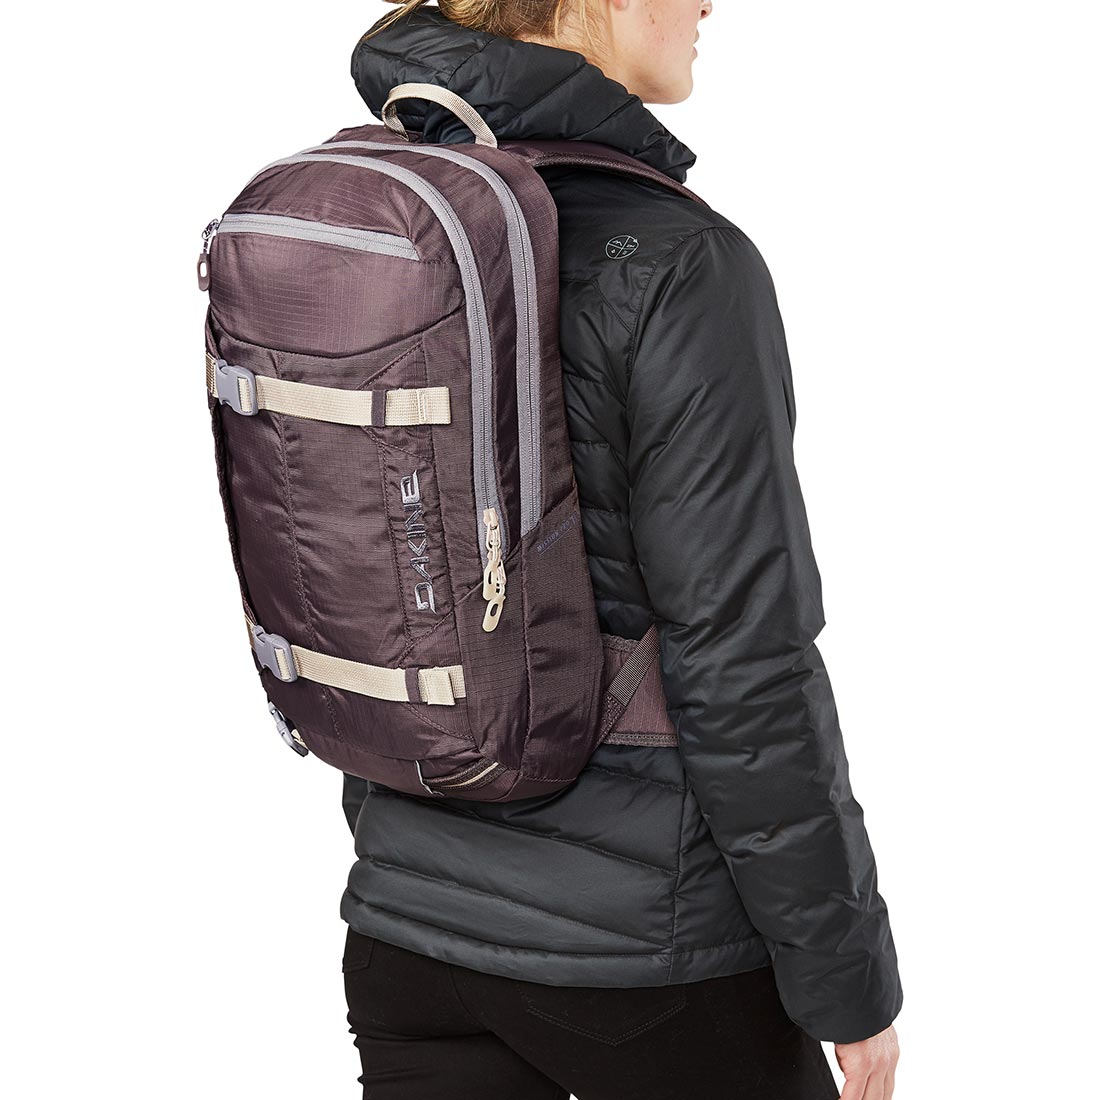 popular stores latest design limpid in sight Dakine Women's Mission Pro 18L Backpack - Amethyst